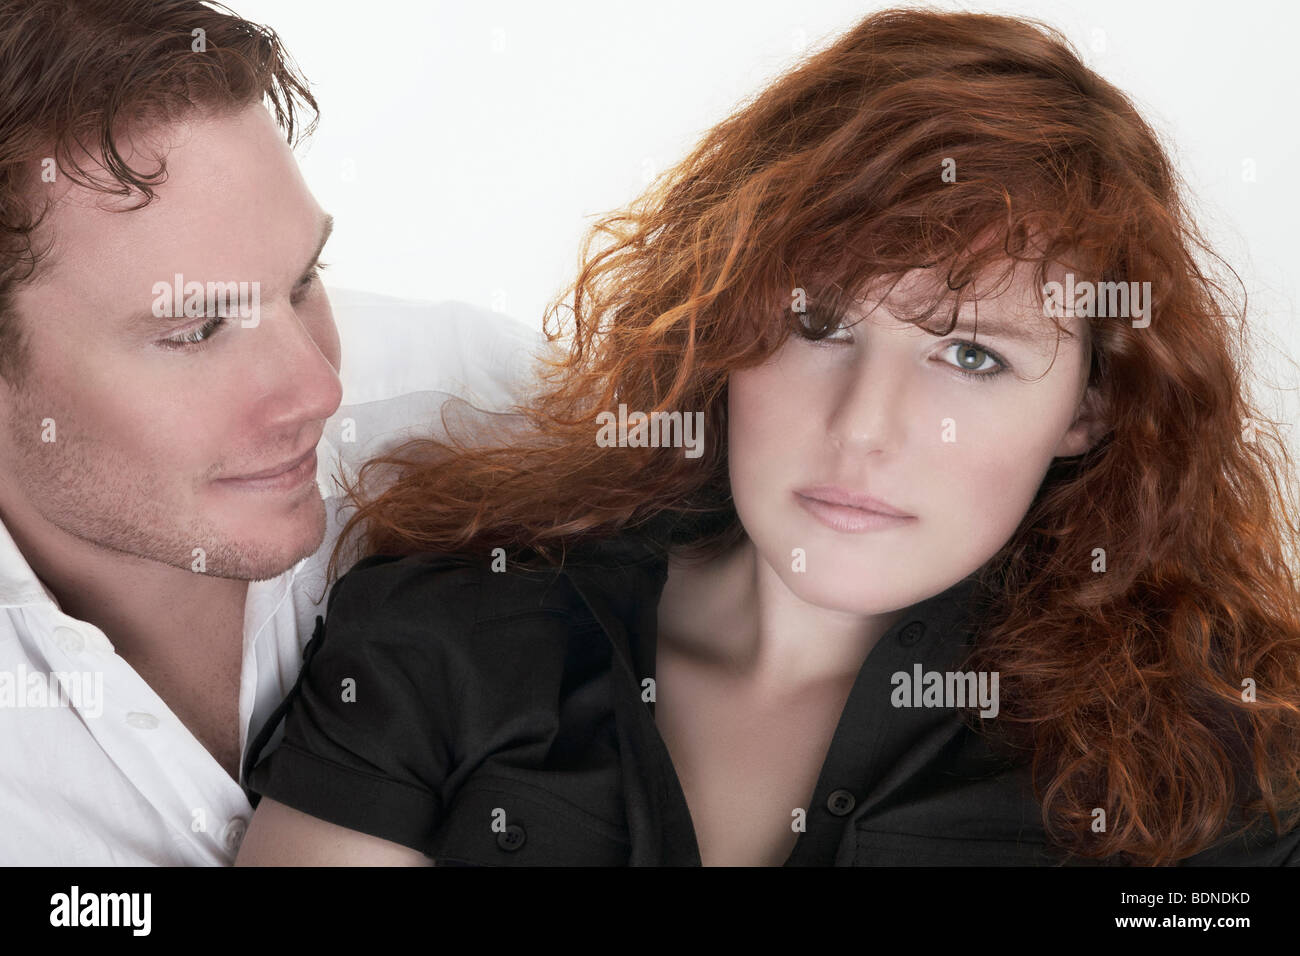 Portrait of a young woman and a young man, couple - Stock Image